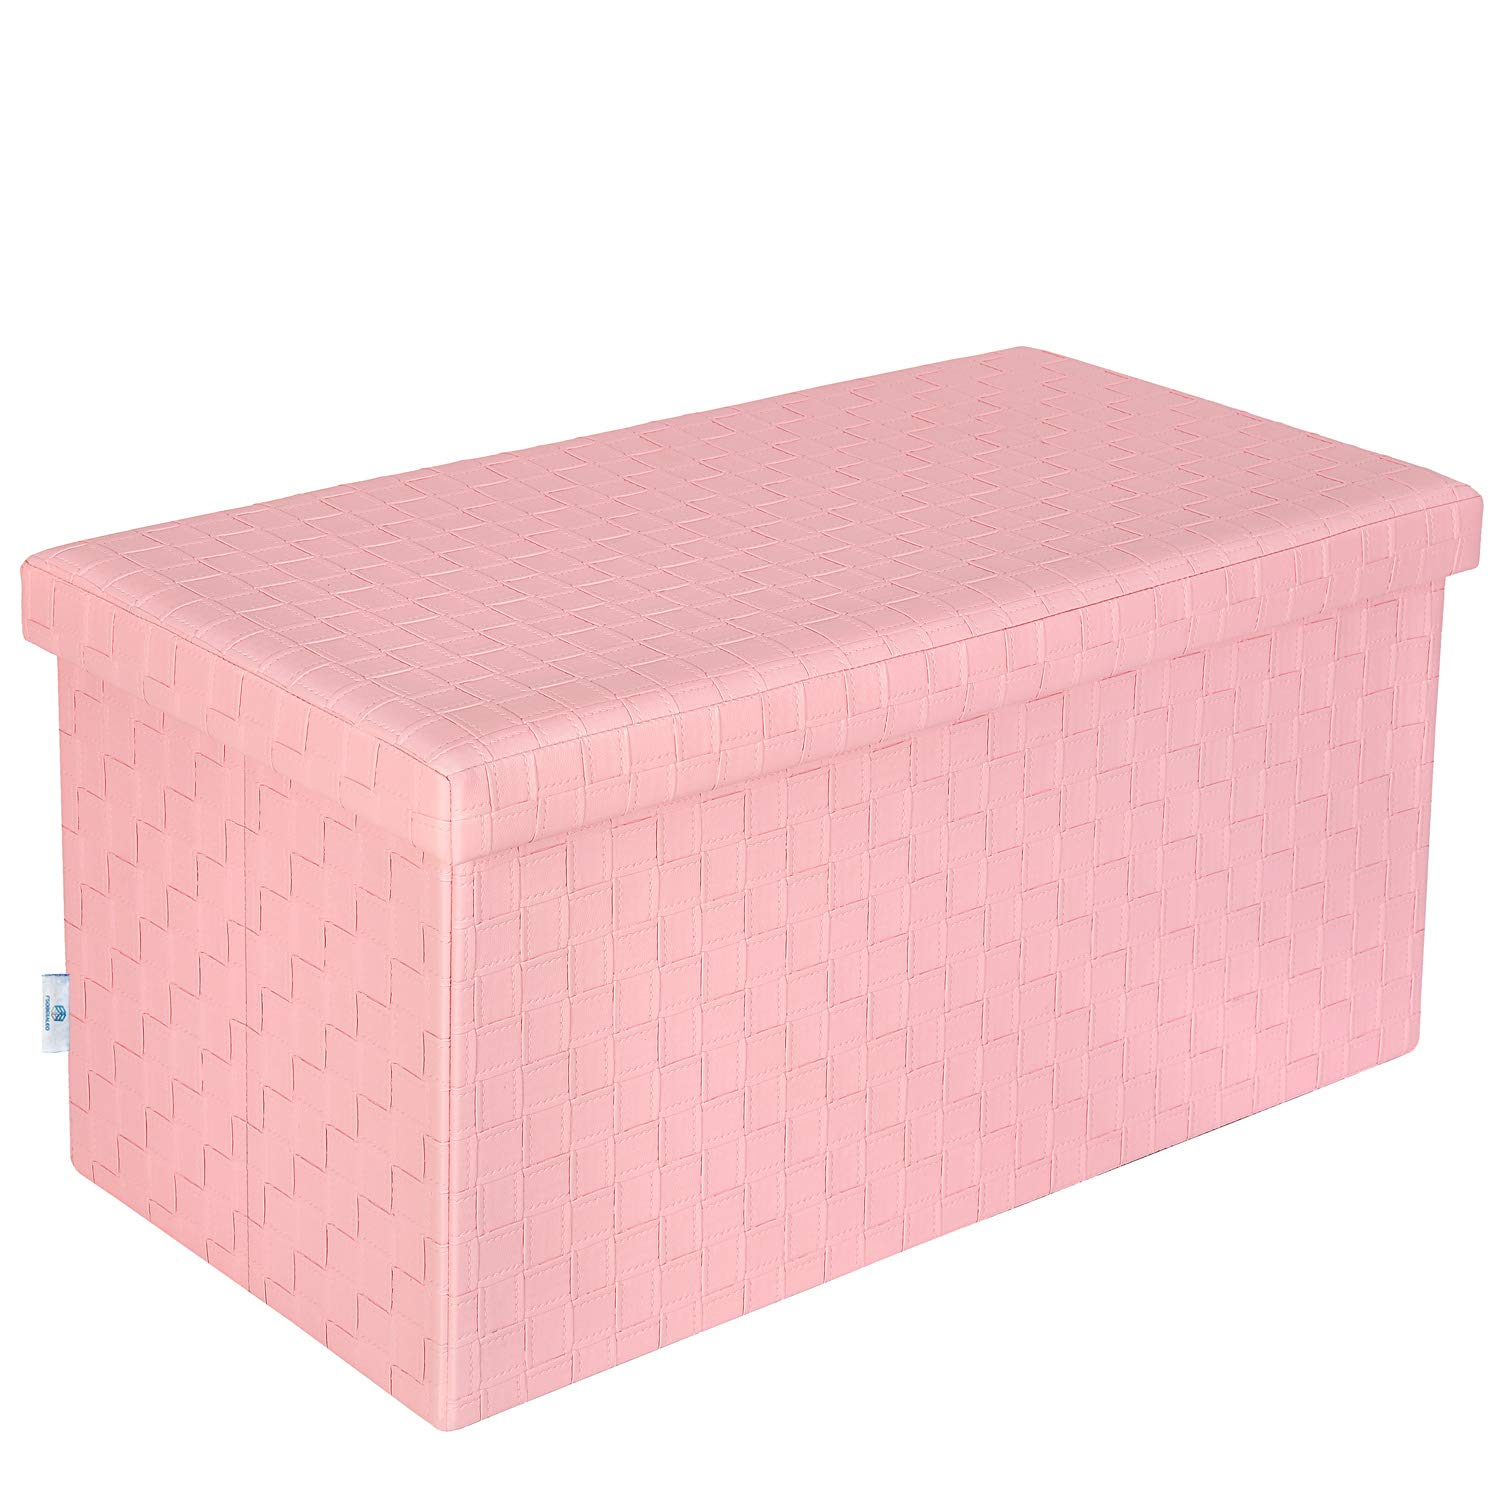 B FSOBEIIALEO Folding Storage Ottoman, Faux Leather Footrest Stool Long Bench, Pink 30''x15''x15'' by B FSOBEIIALEO